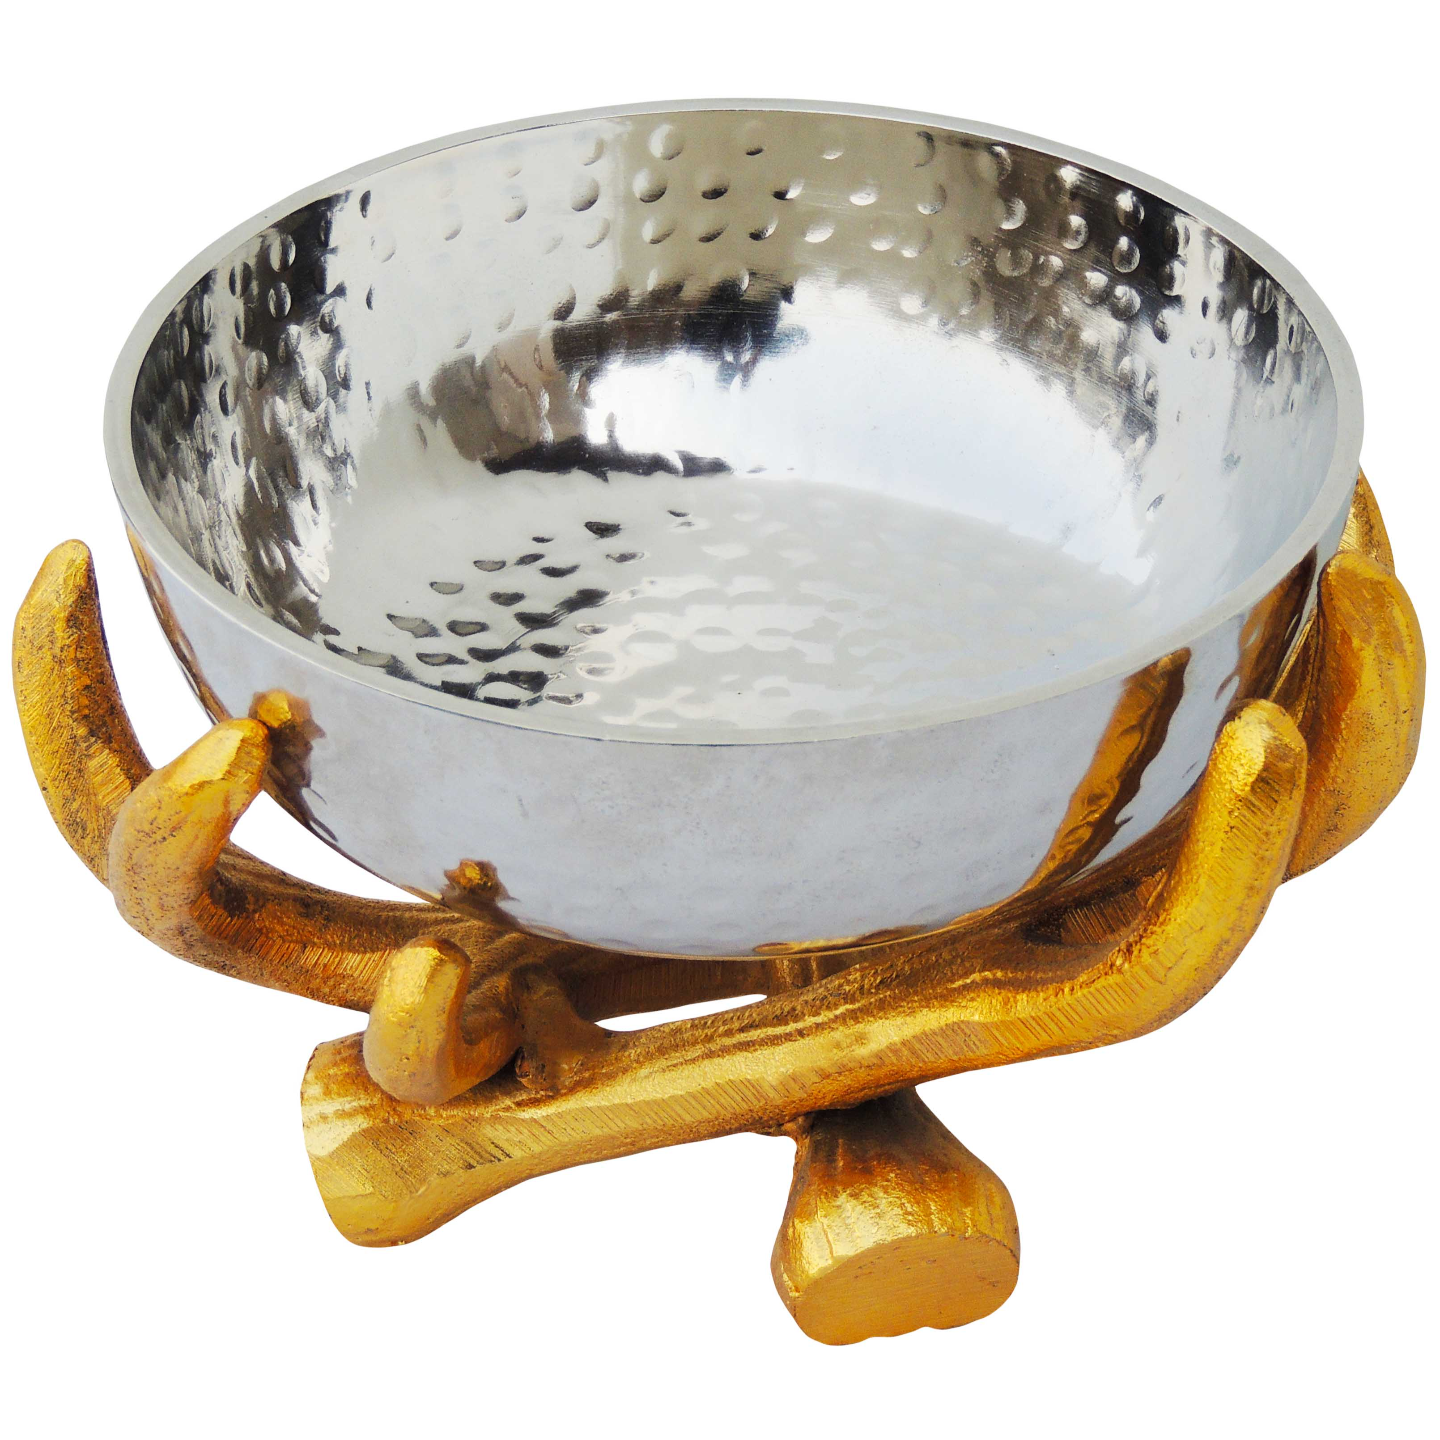 Aluminium  Bowlwith Stand In Gold And Nickel Finish -7*7 Inch  (A3192/8)